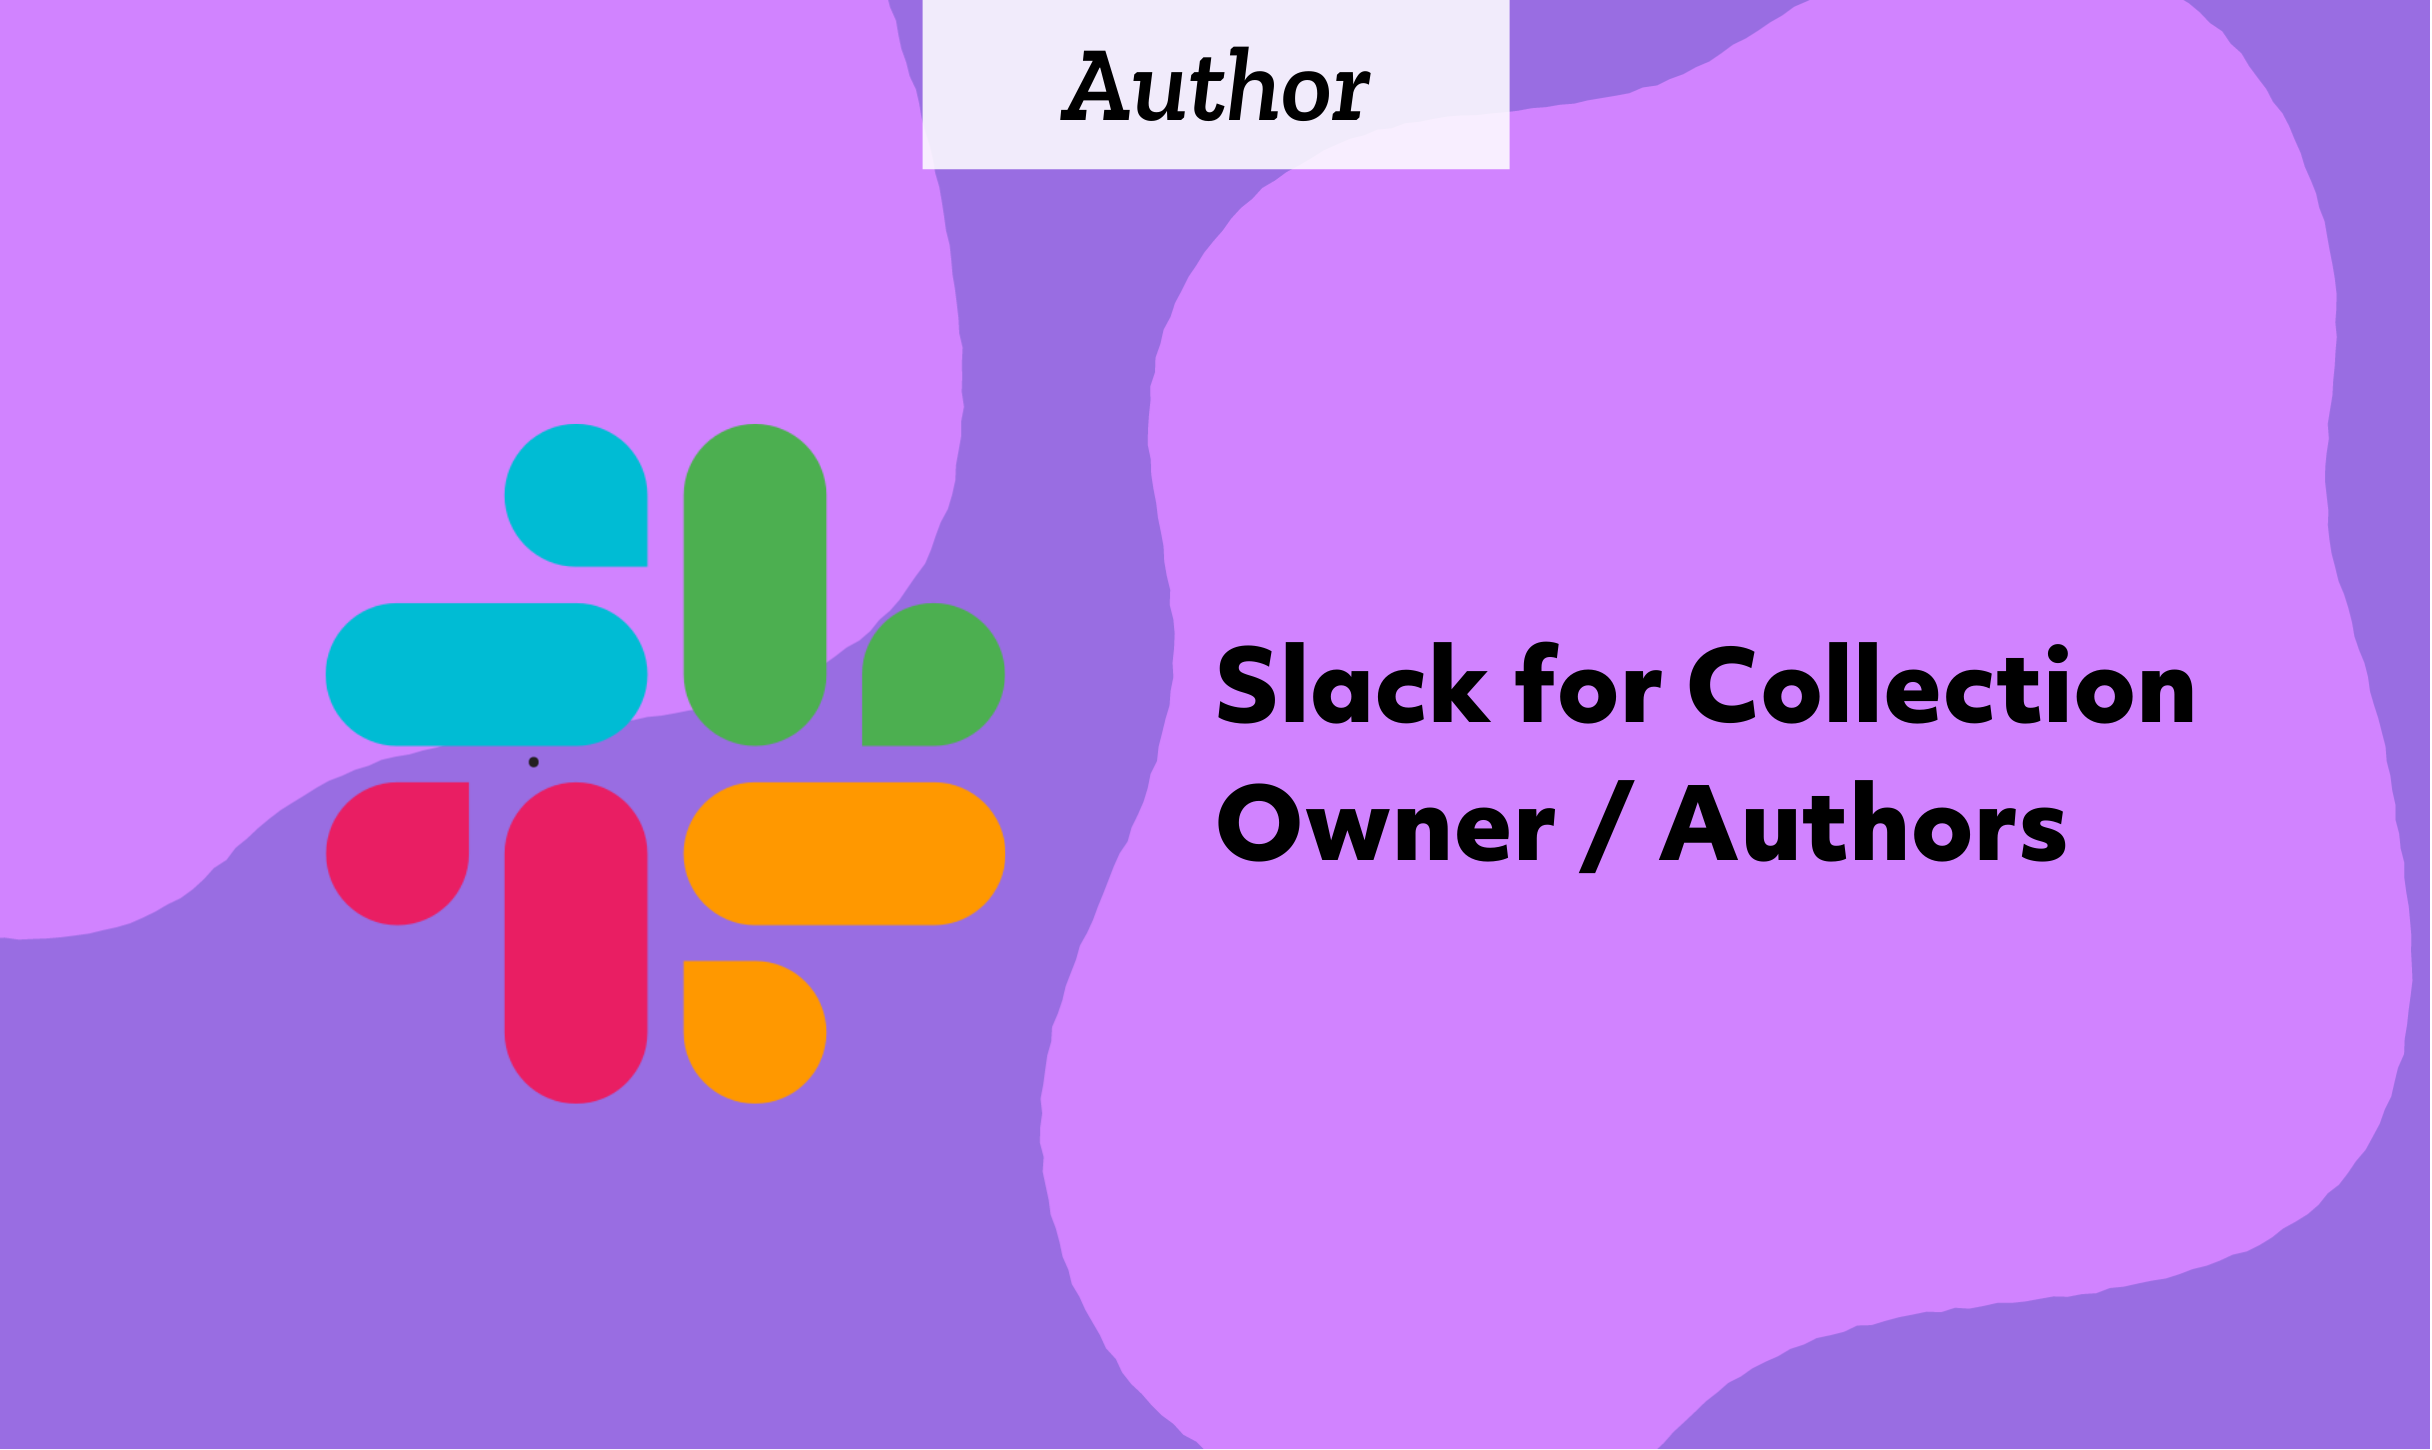 Slack for Collection Owner / Authors